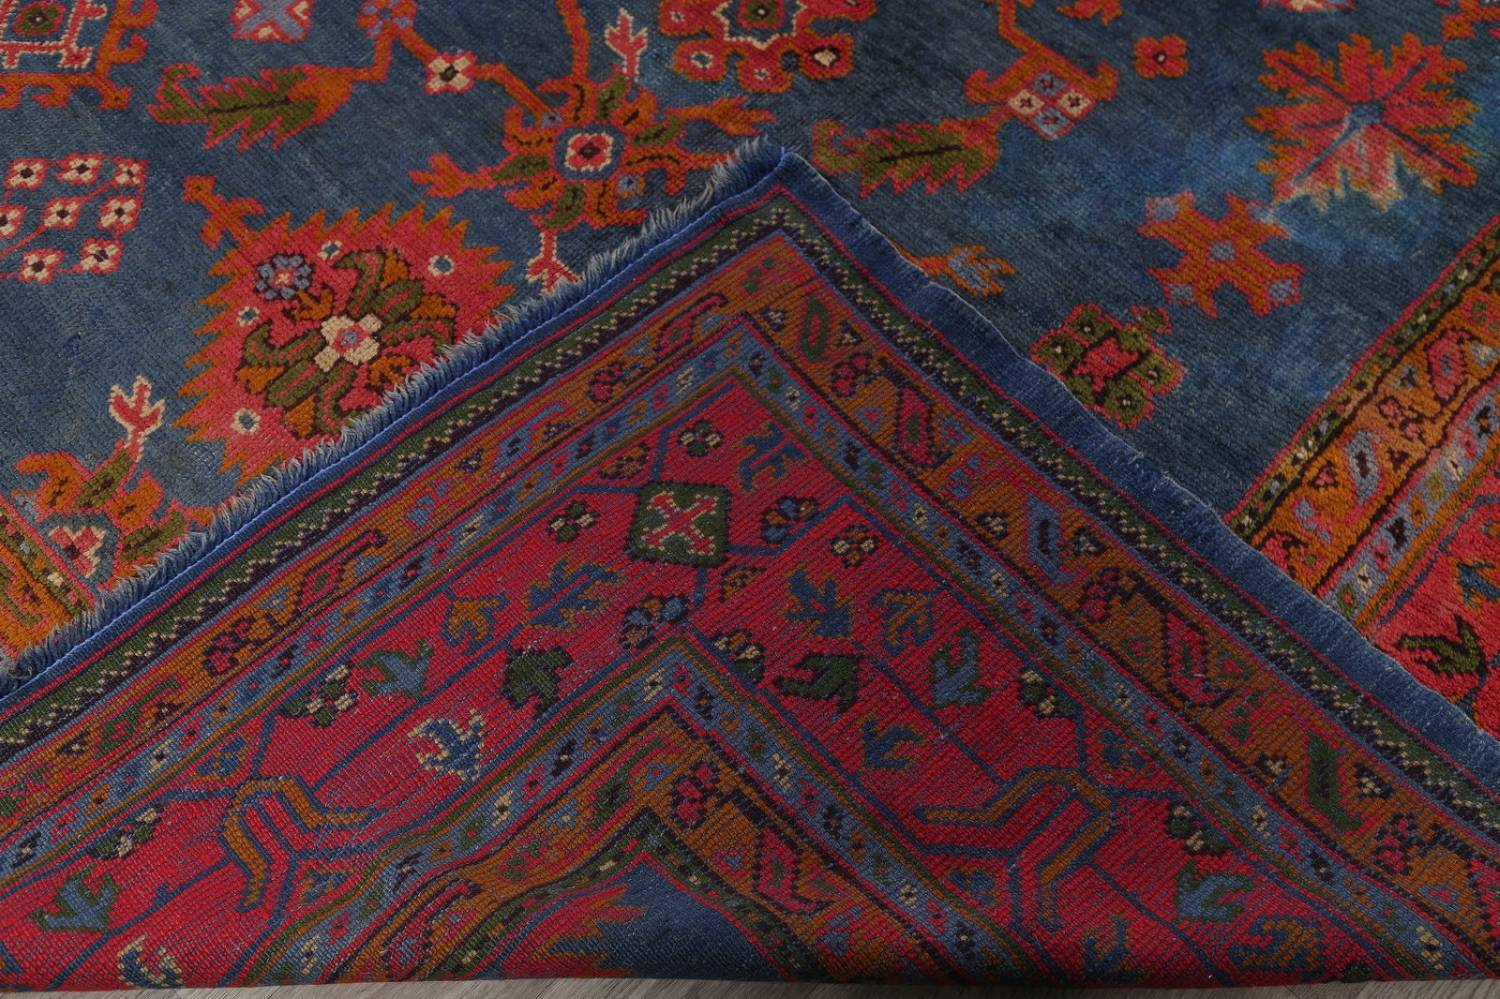 Antique Vegetable Dye Oushak Turkish Hand-Knotted Area Rug Wool 11x16 image 24